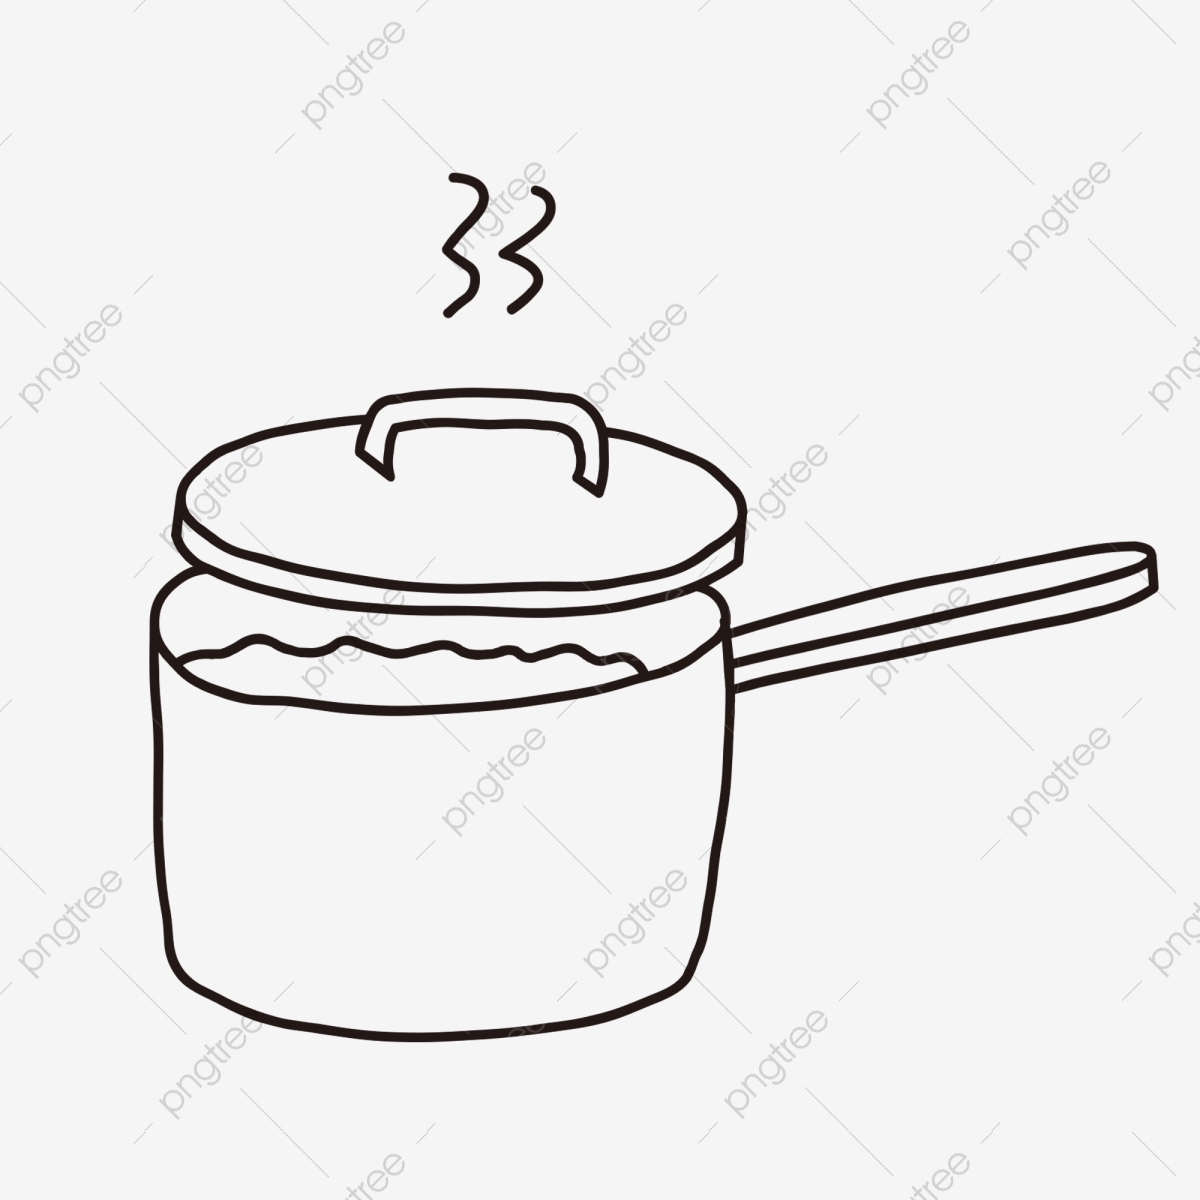 Kitchen supplies aesthetic line black and white line drawing